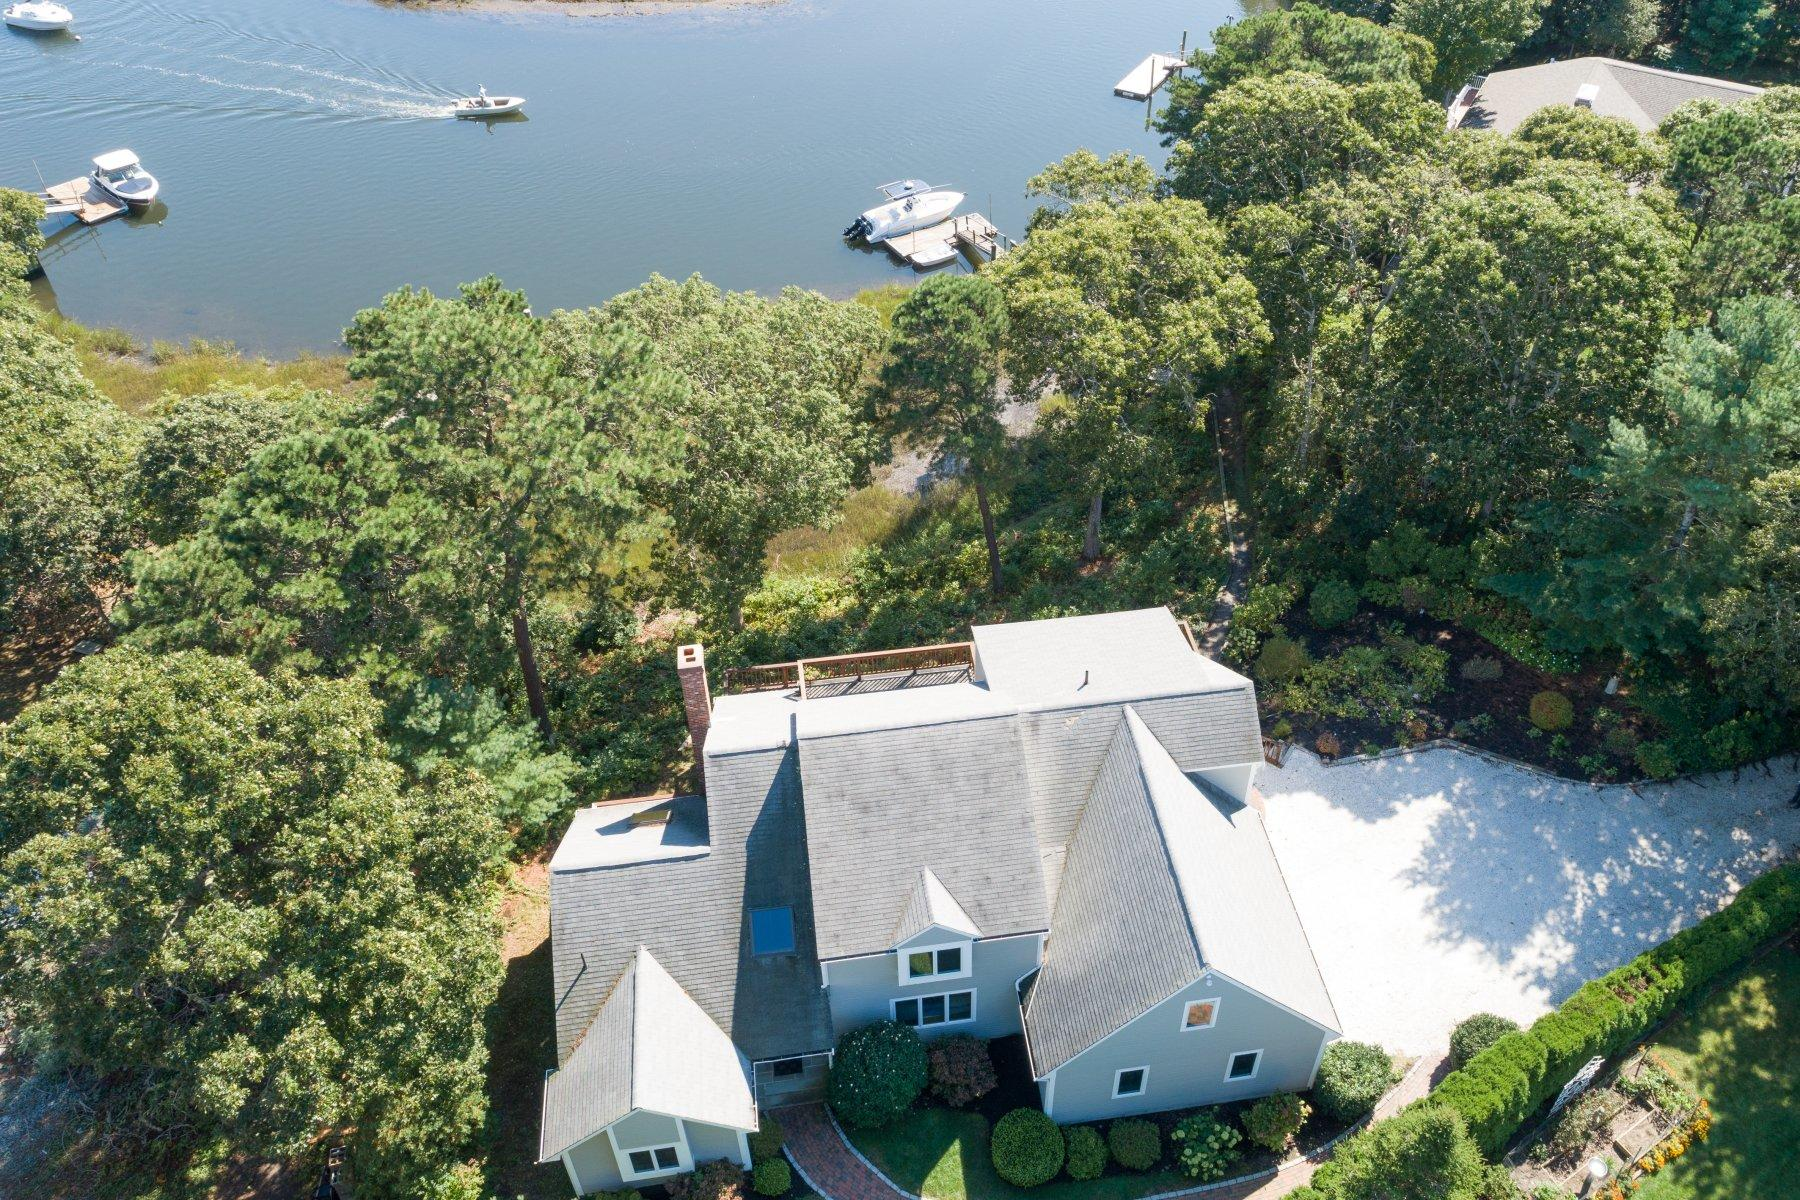 Single Family Home for Active at 4 Salt River Lane, Harwich, MA 4 Salt River Lane Harwich, Massachusetts 02671 United States